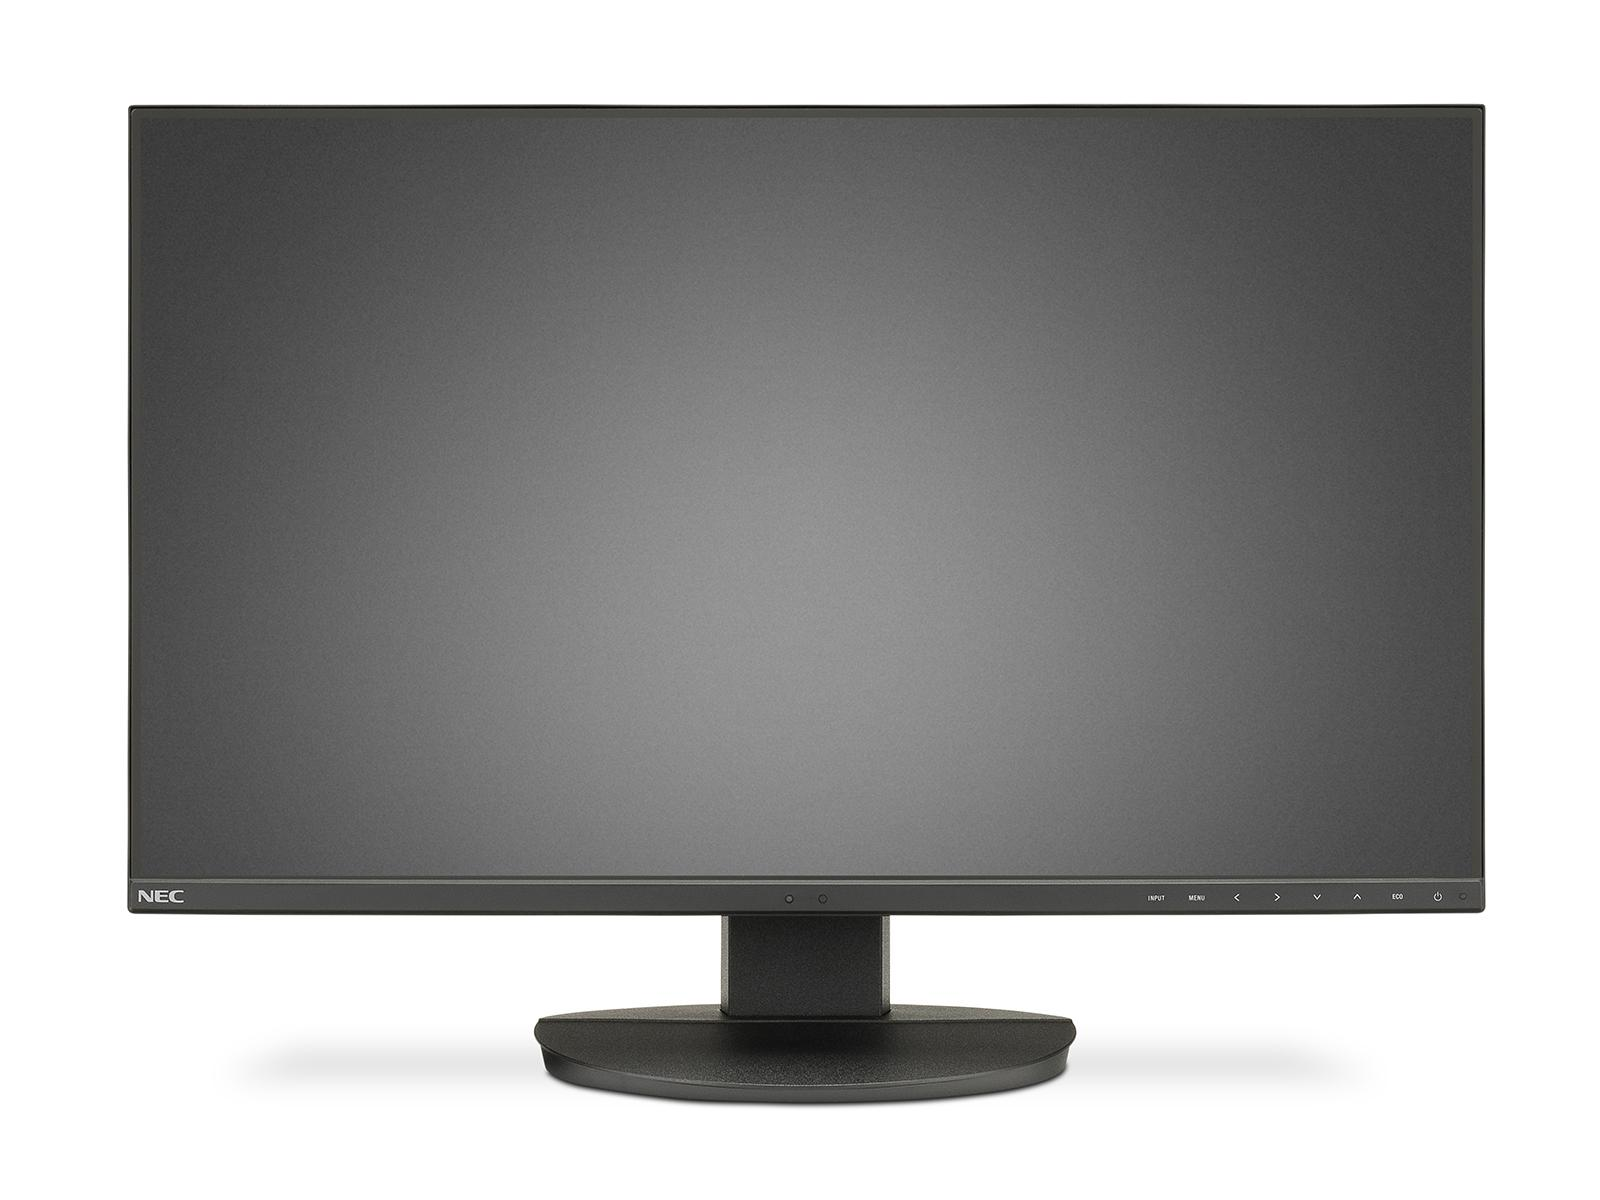 Монитор NEC MultiSync EA271F, AH-IPS, 27 inch, Wide, Full HD, DisplayPort, HDMI, DVI-D, D-sub, Черен